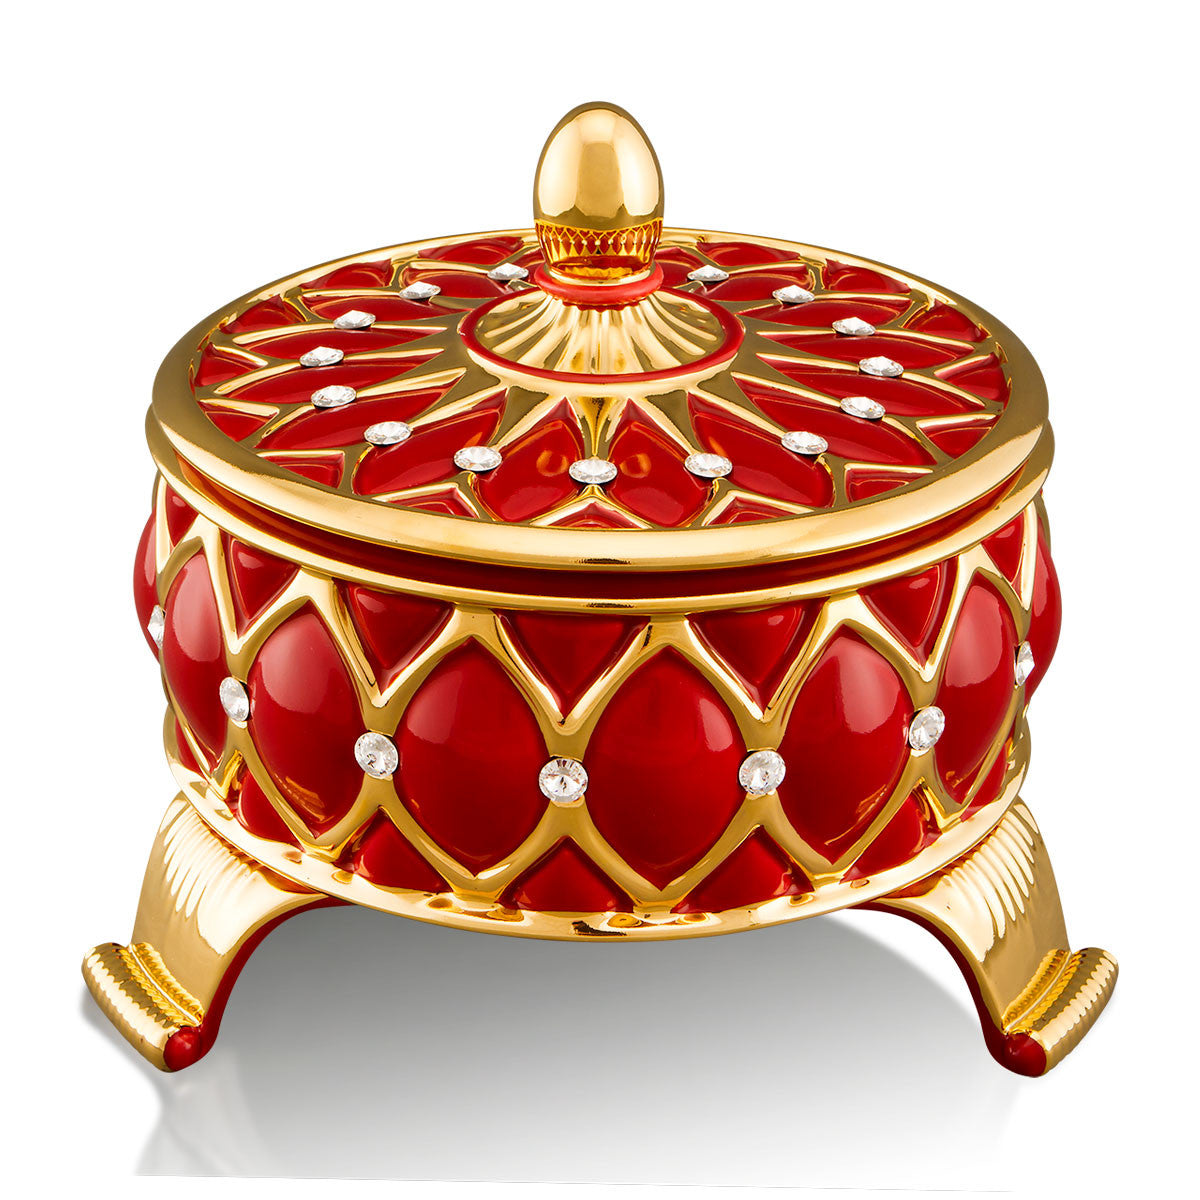 ceramic porcelain red venice box finished in pure gold with Swarovski handmade in Italy